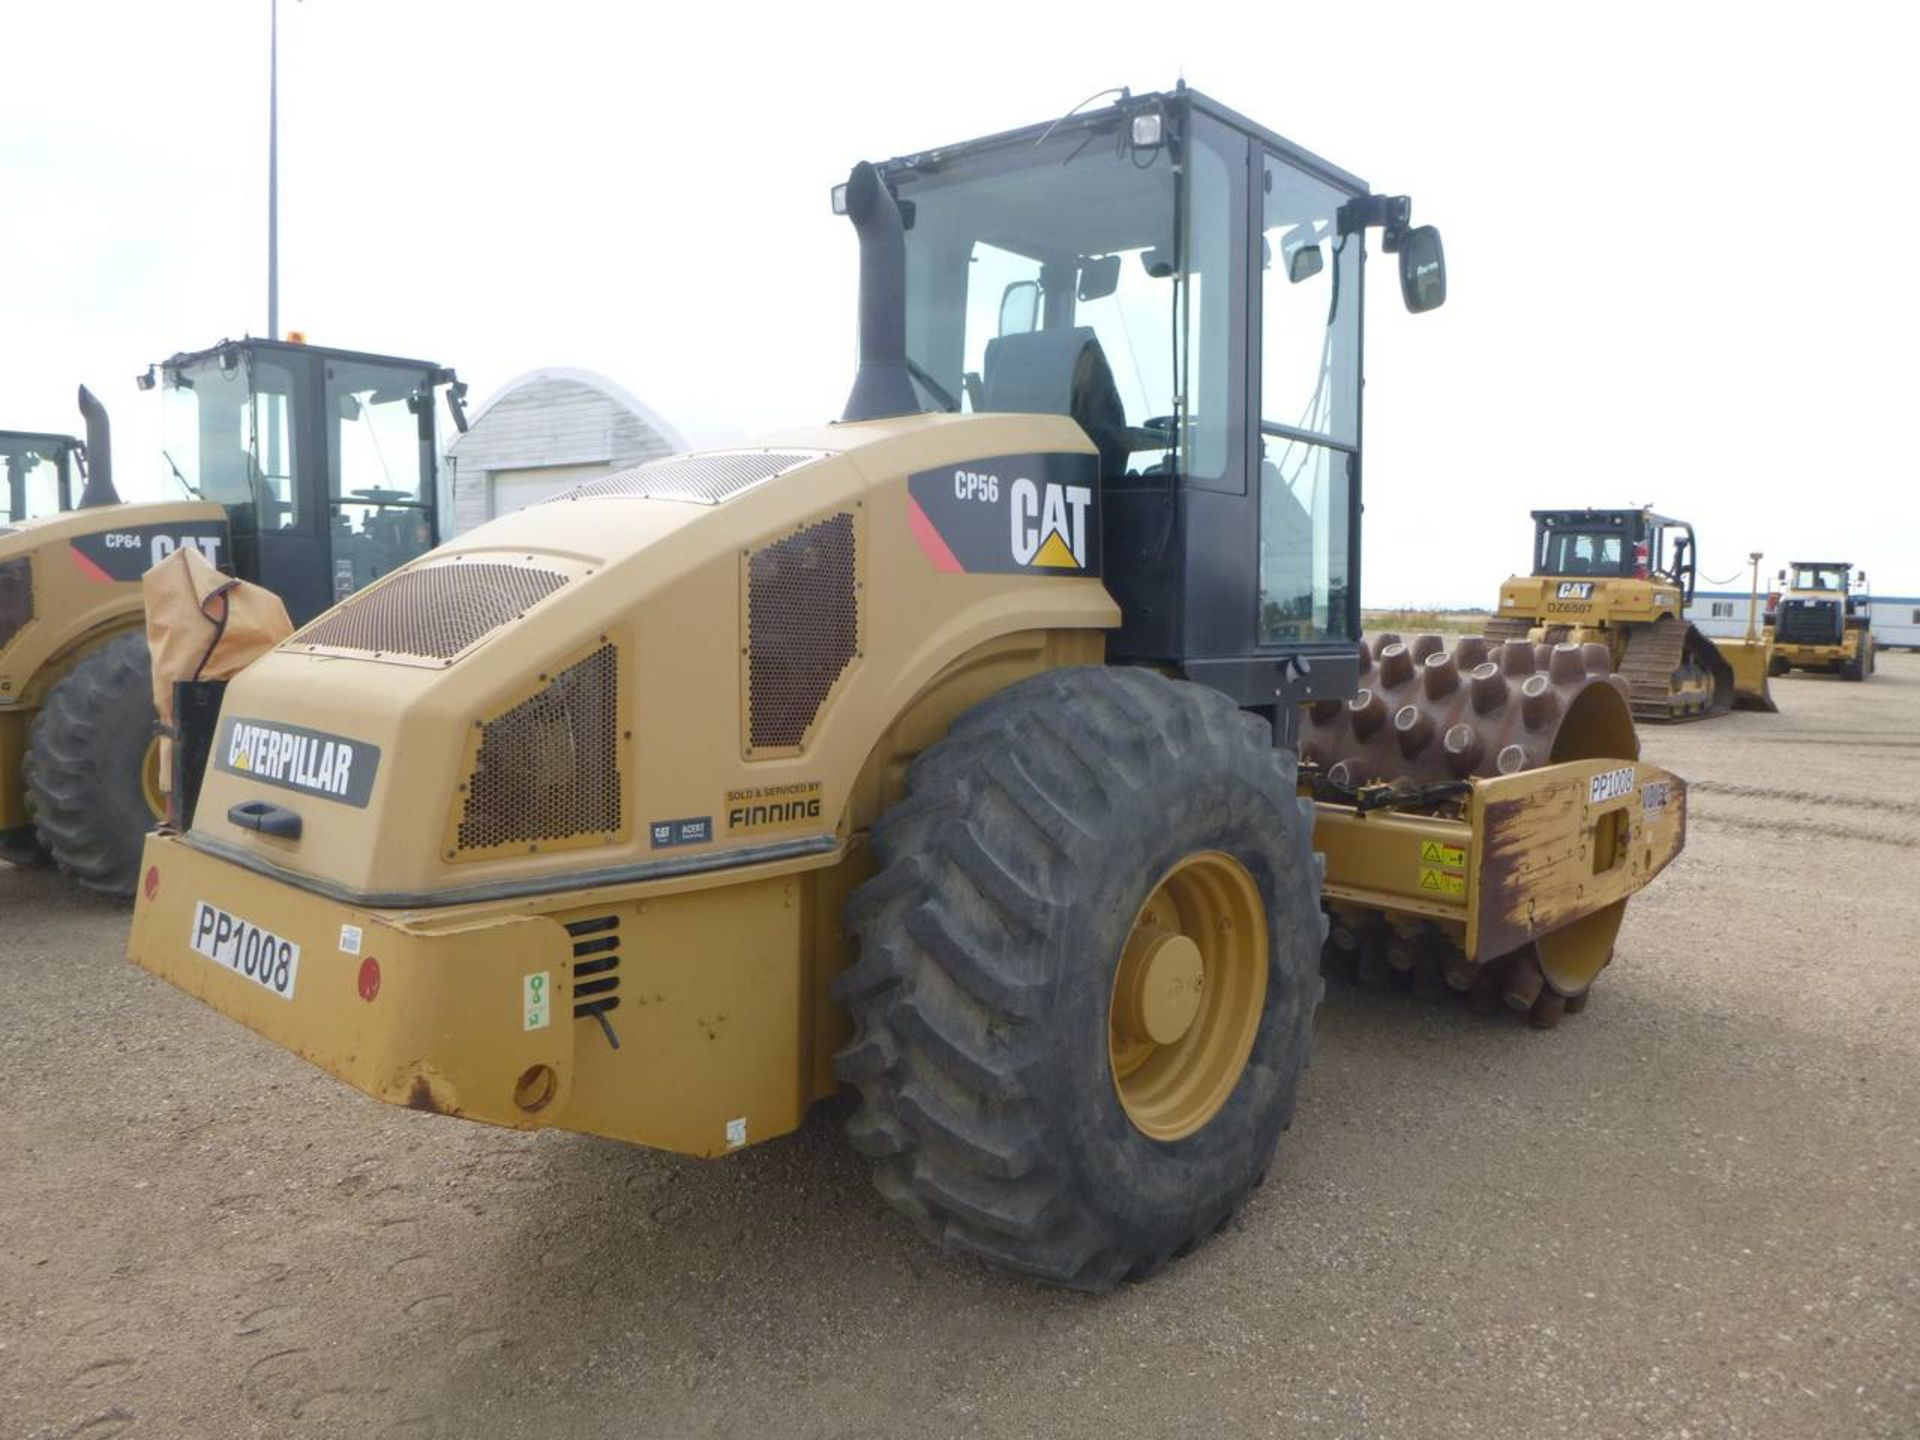 2009 Caterpillar CP56 Compactor - Image 3 of 9